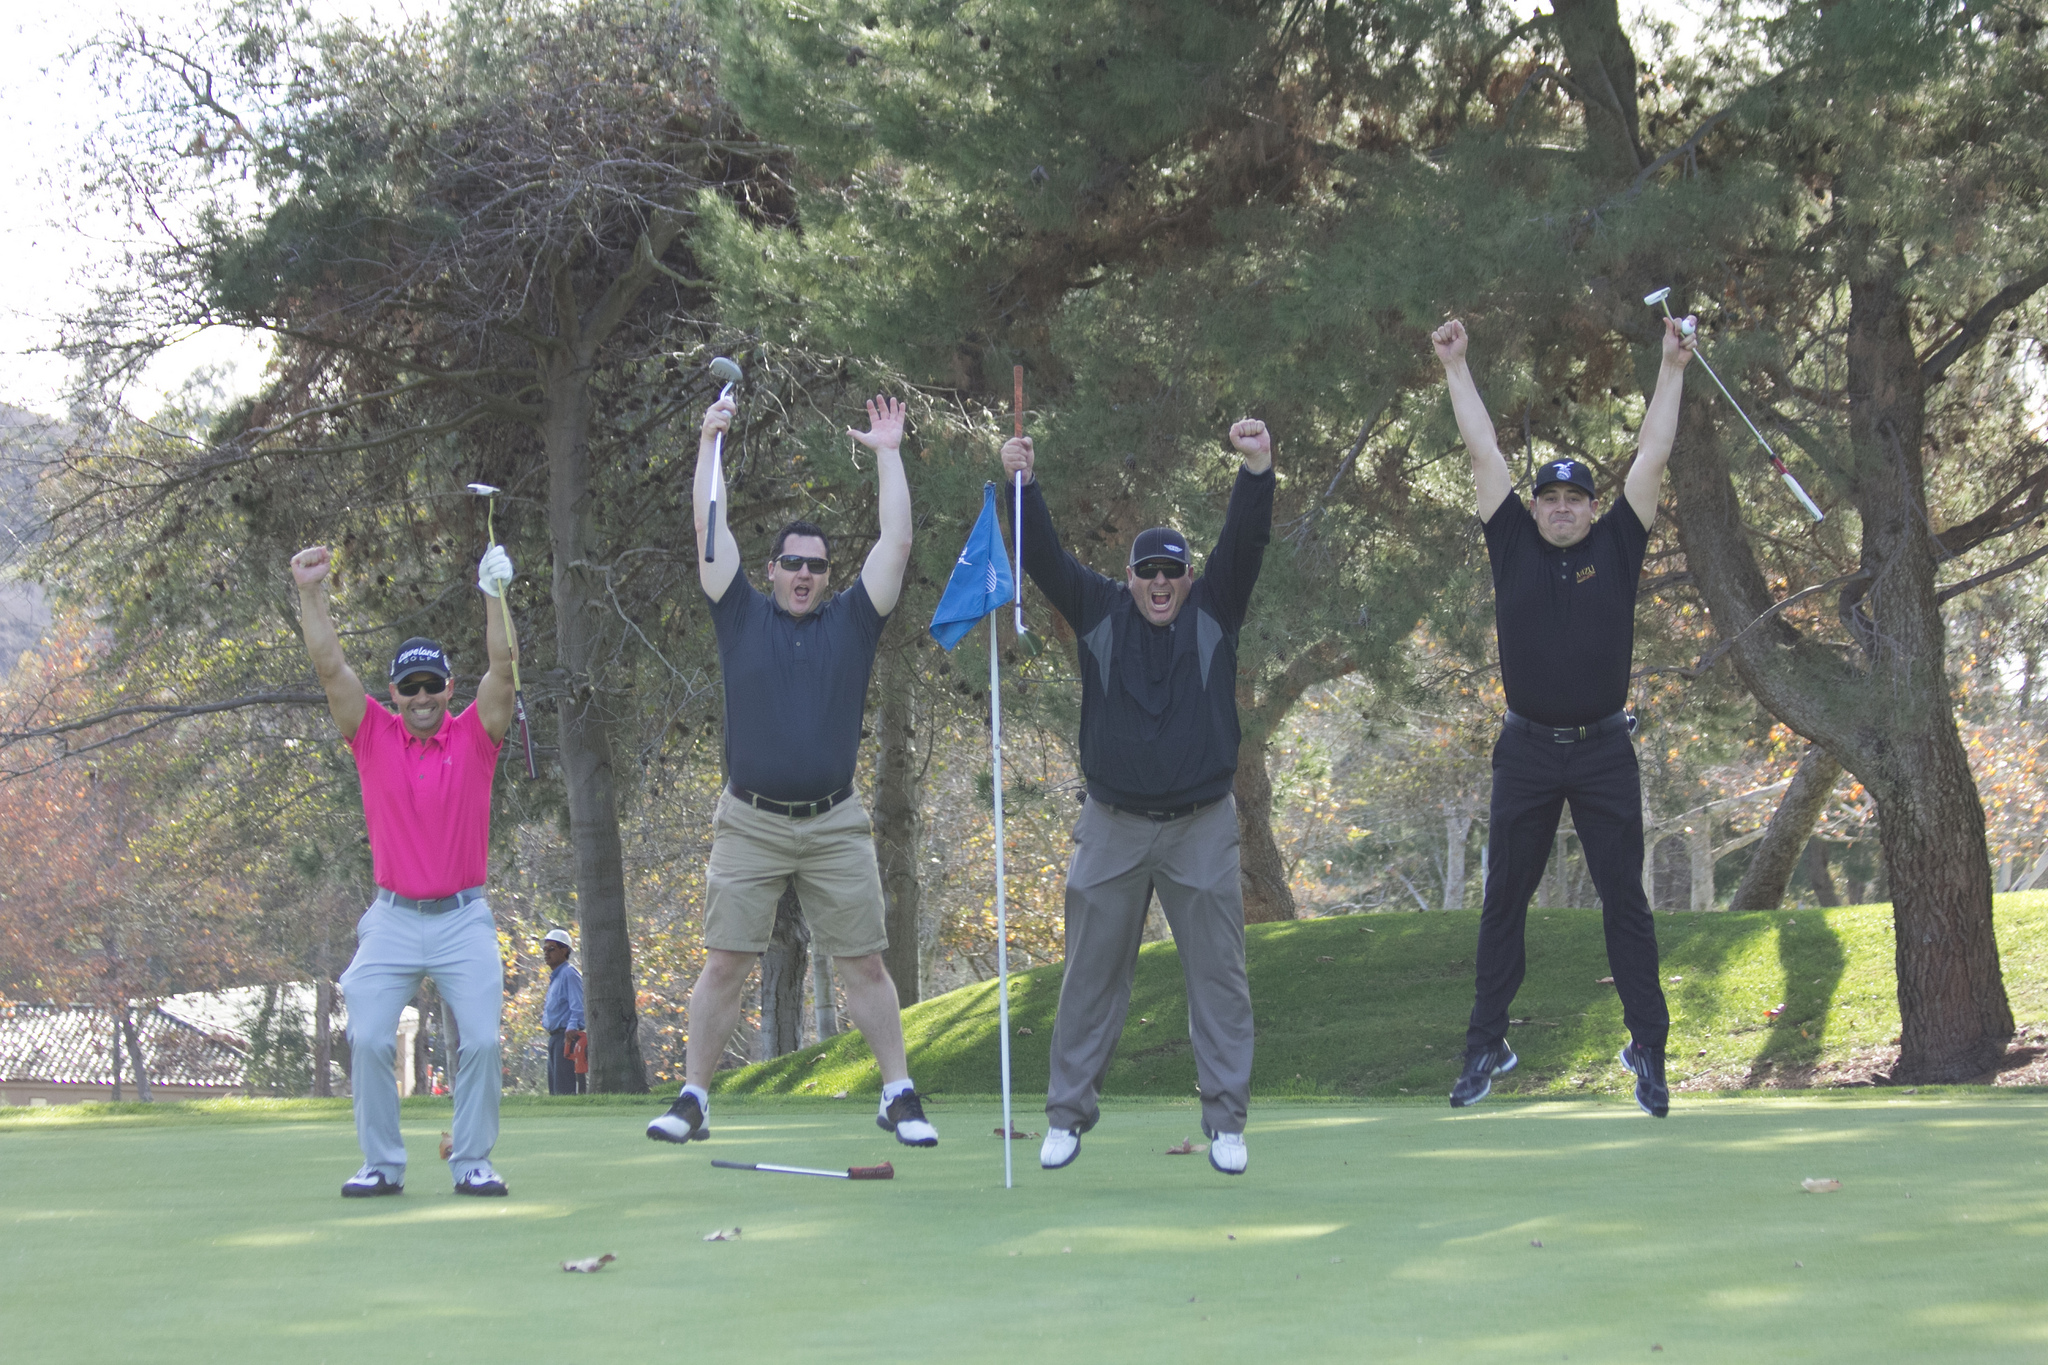 Good luck to all the golfers at the 2nd Annual Ruination Crossfit Charity Golf Tournament